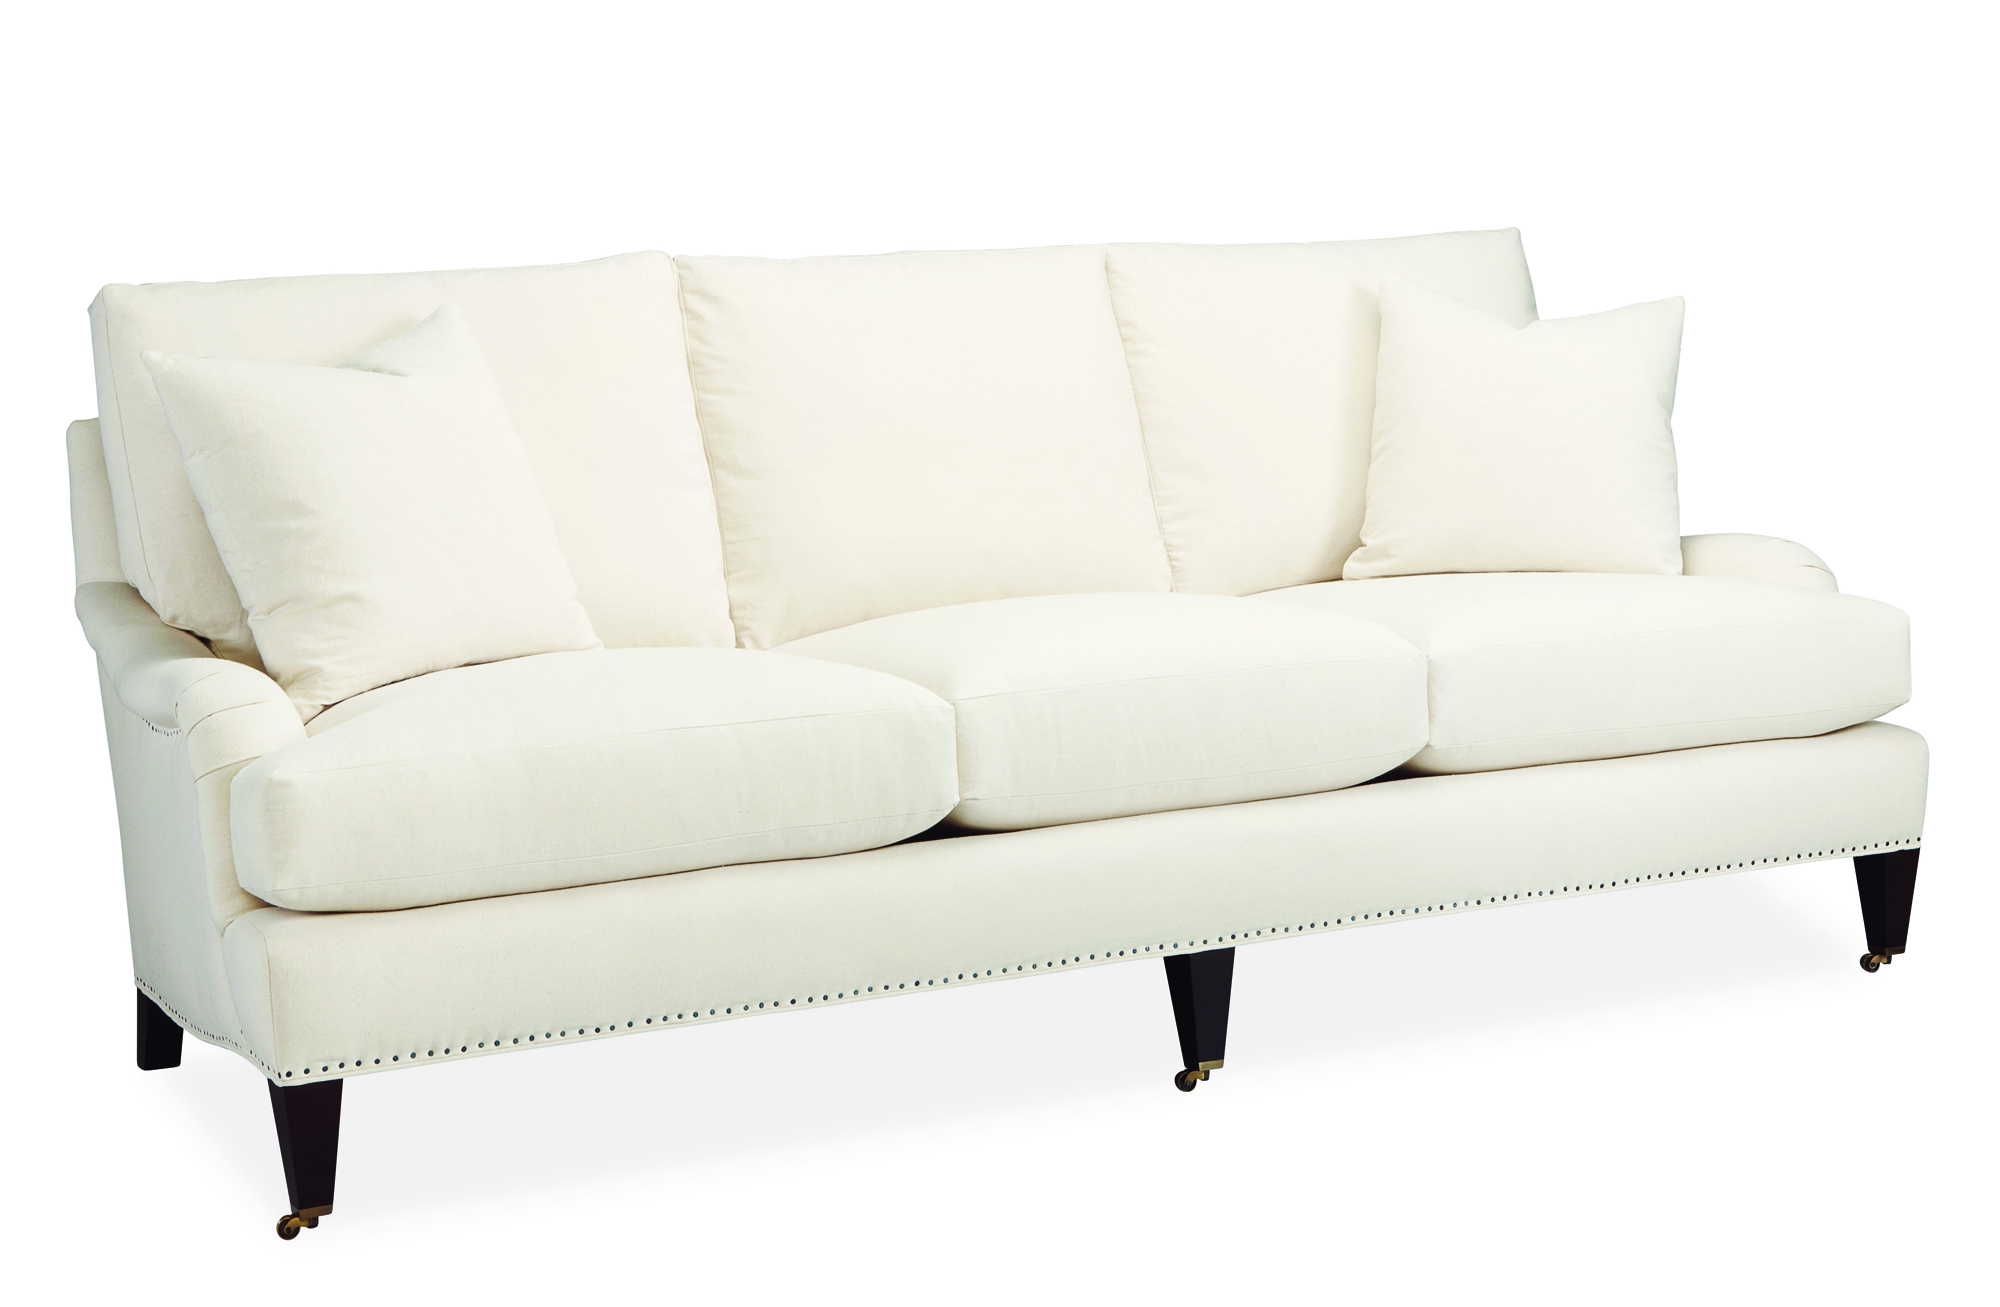 Lee Industries 1663 Sofa avaiable at Paul Rich Paul Rich